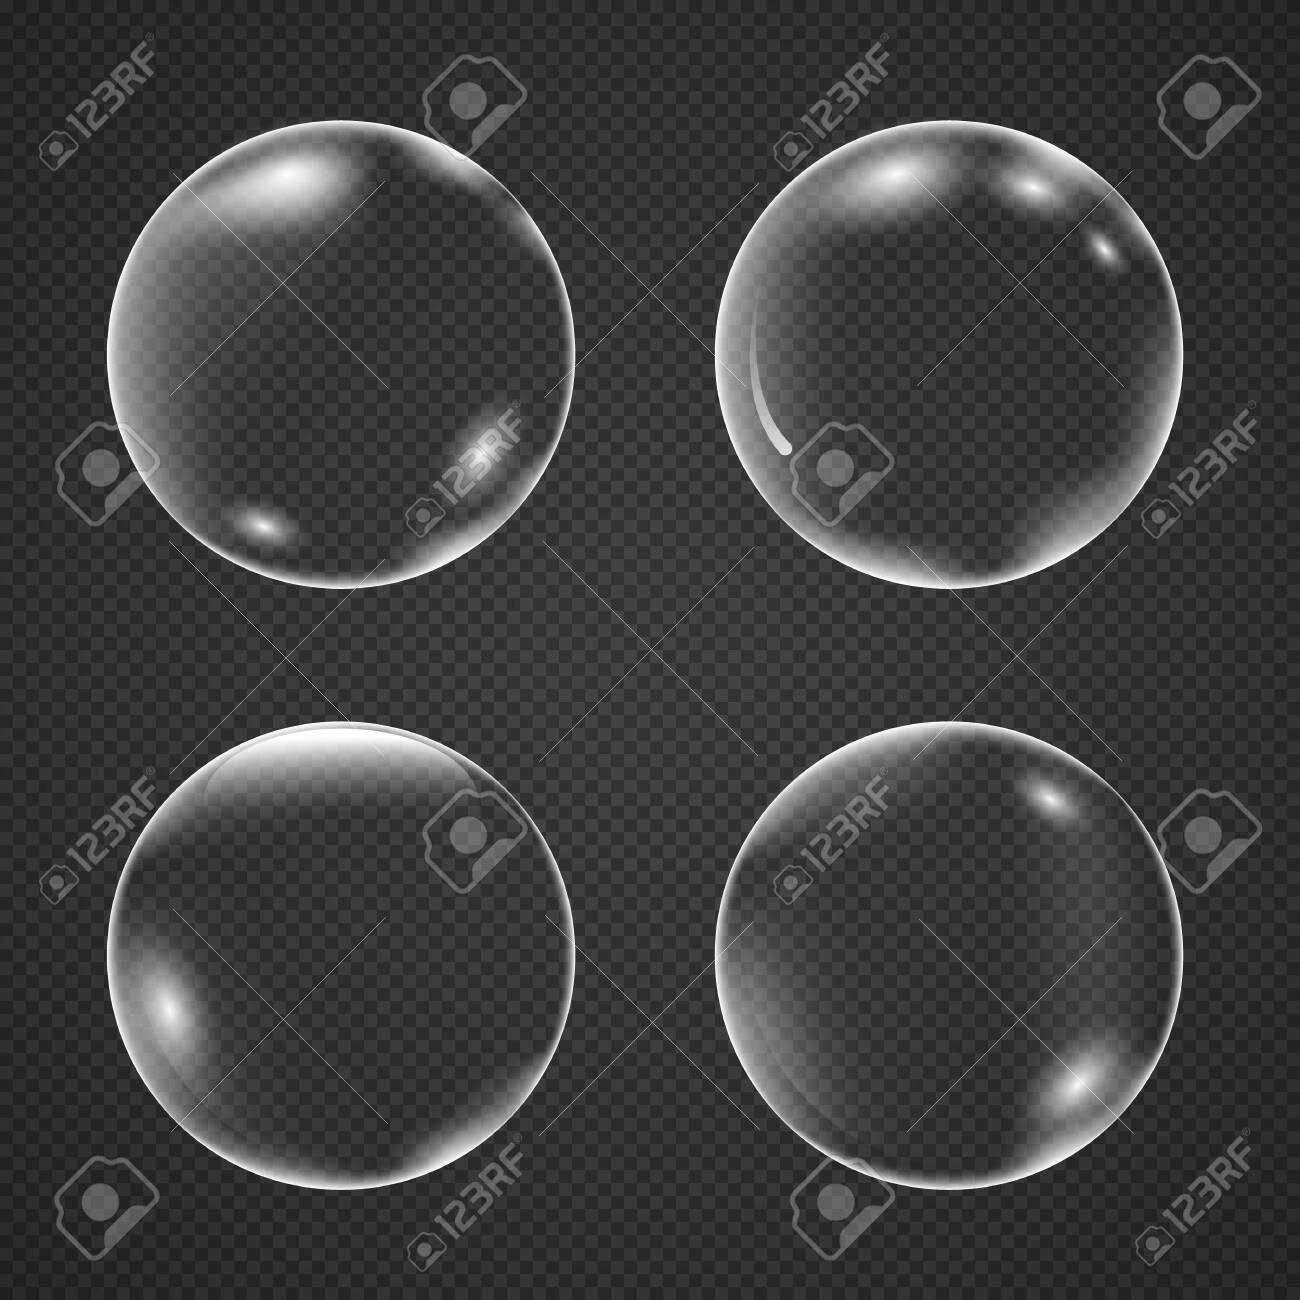 Realistic white air bubbles with reflection isolated on a transparent background. Champagne fizzy on black closeup. Vector illustration underwater bubble - 136411662